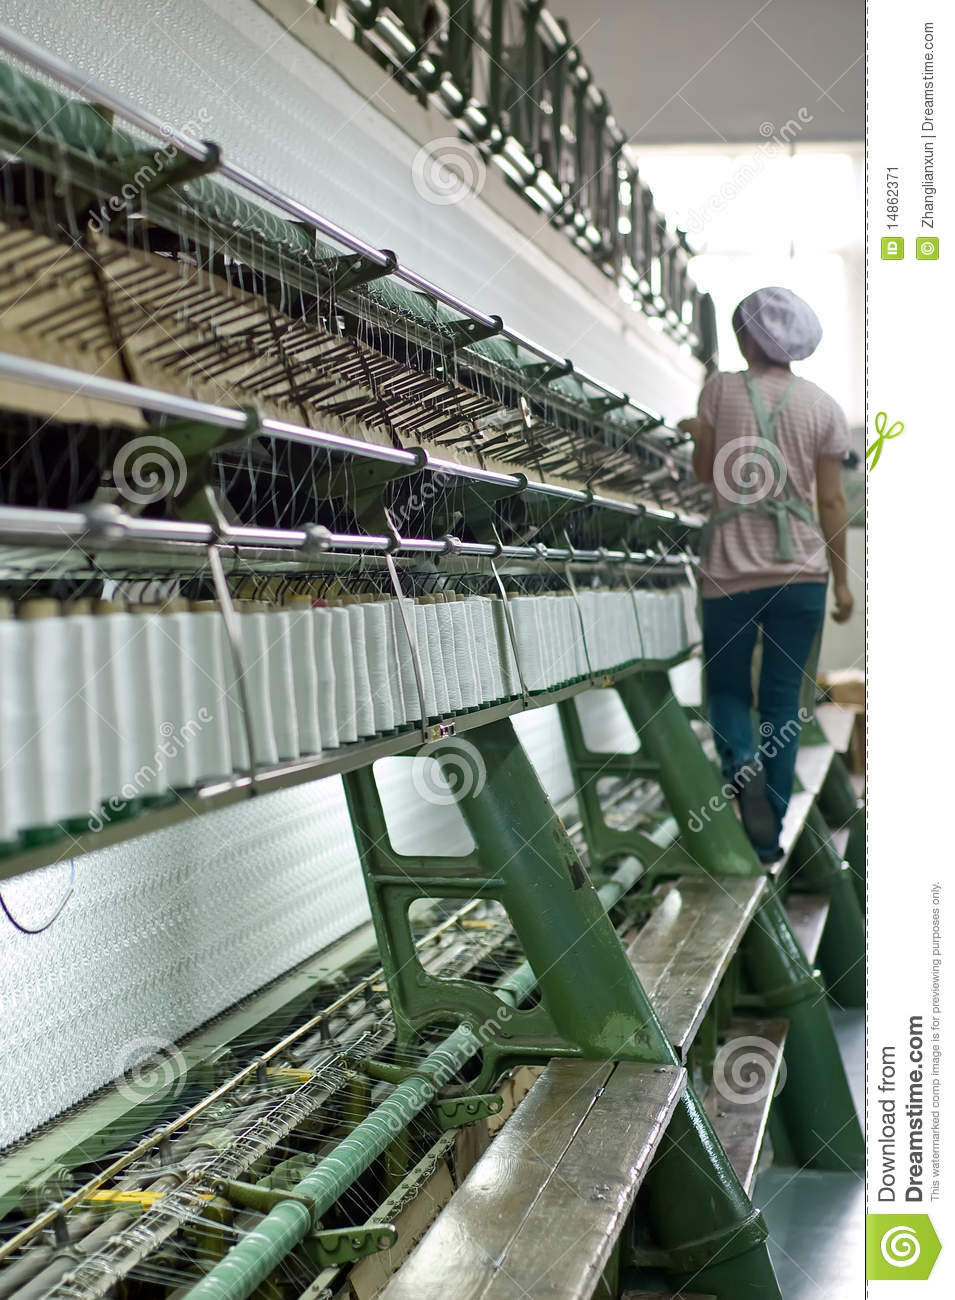 A female worker working in Textile workshop